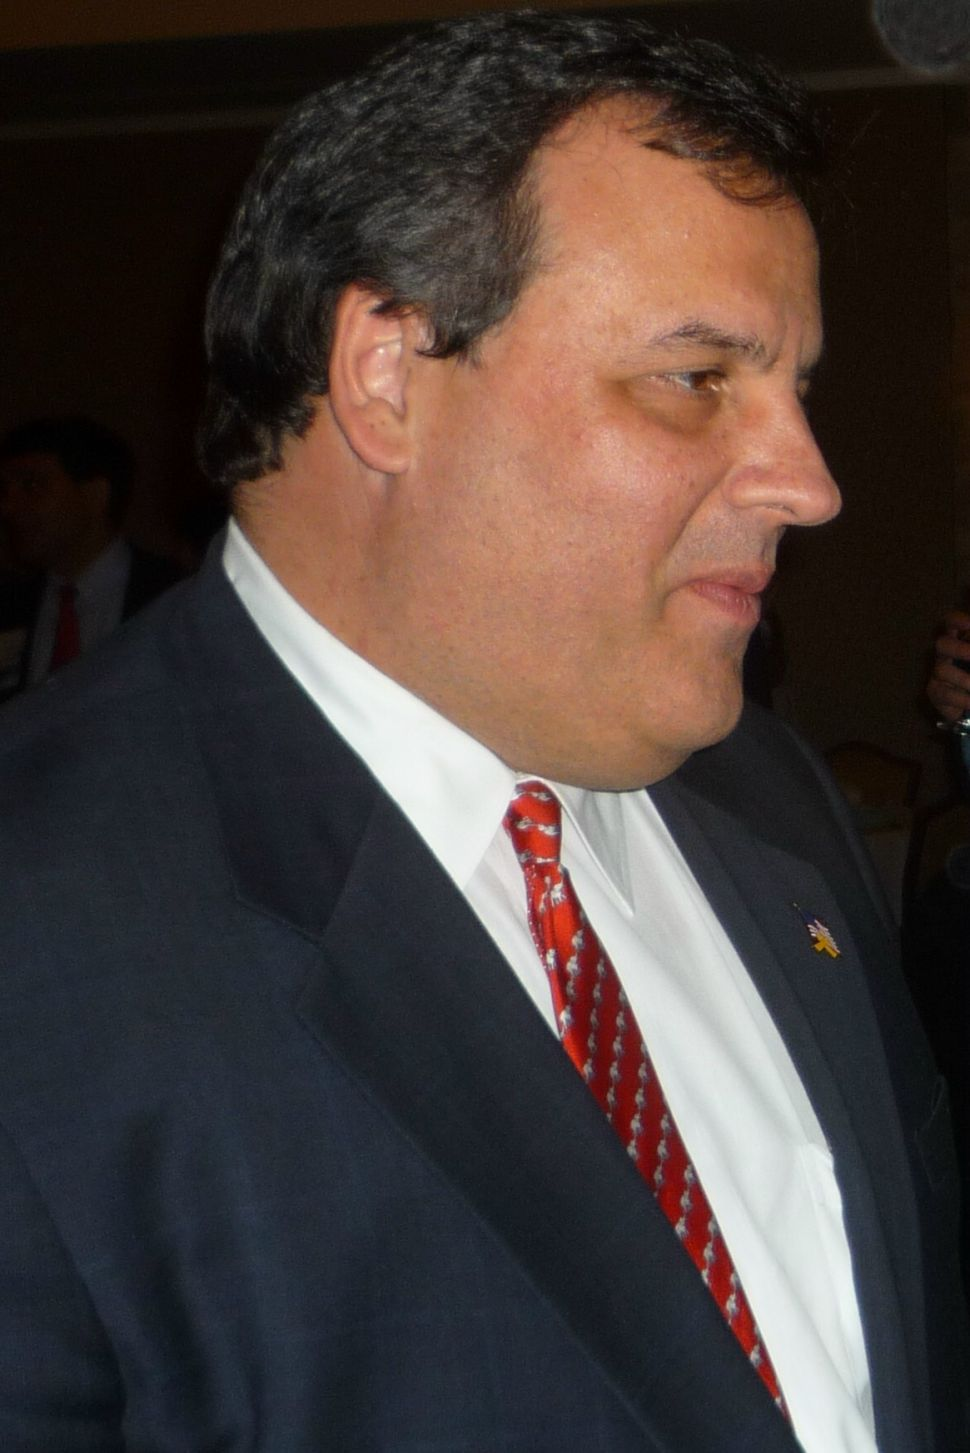 Casagrande welcomes Christie to Colts Neck